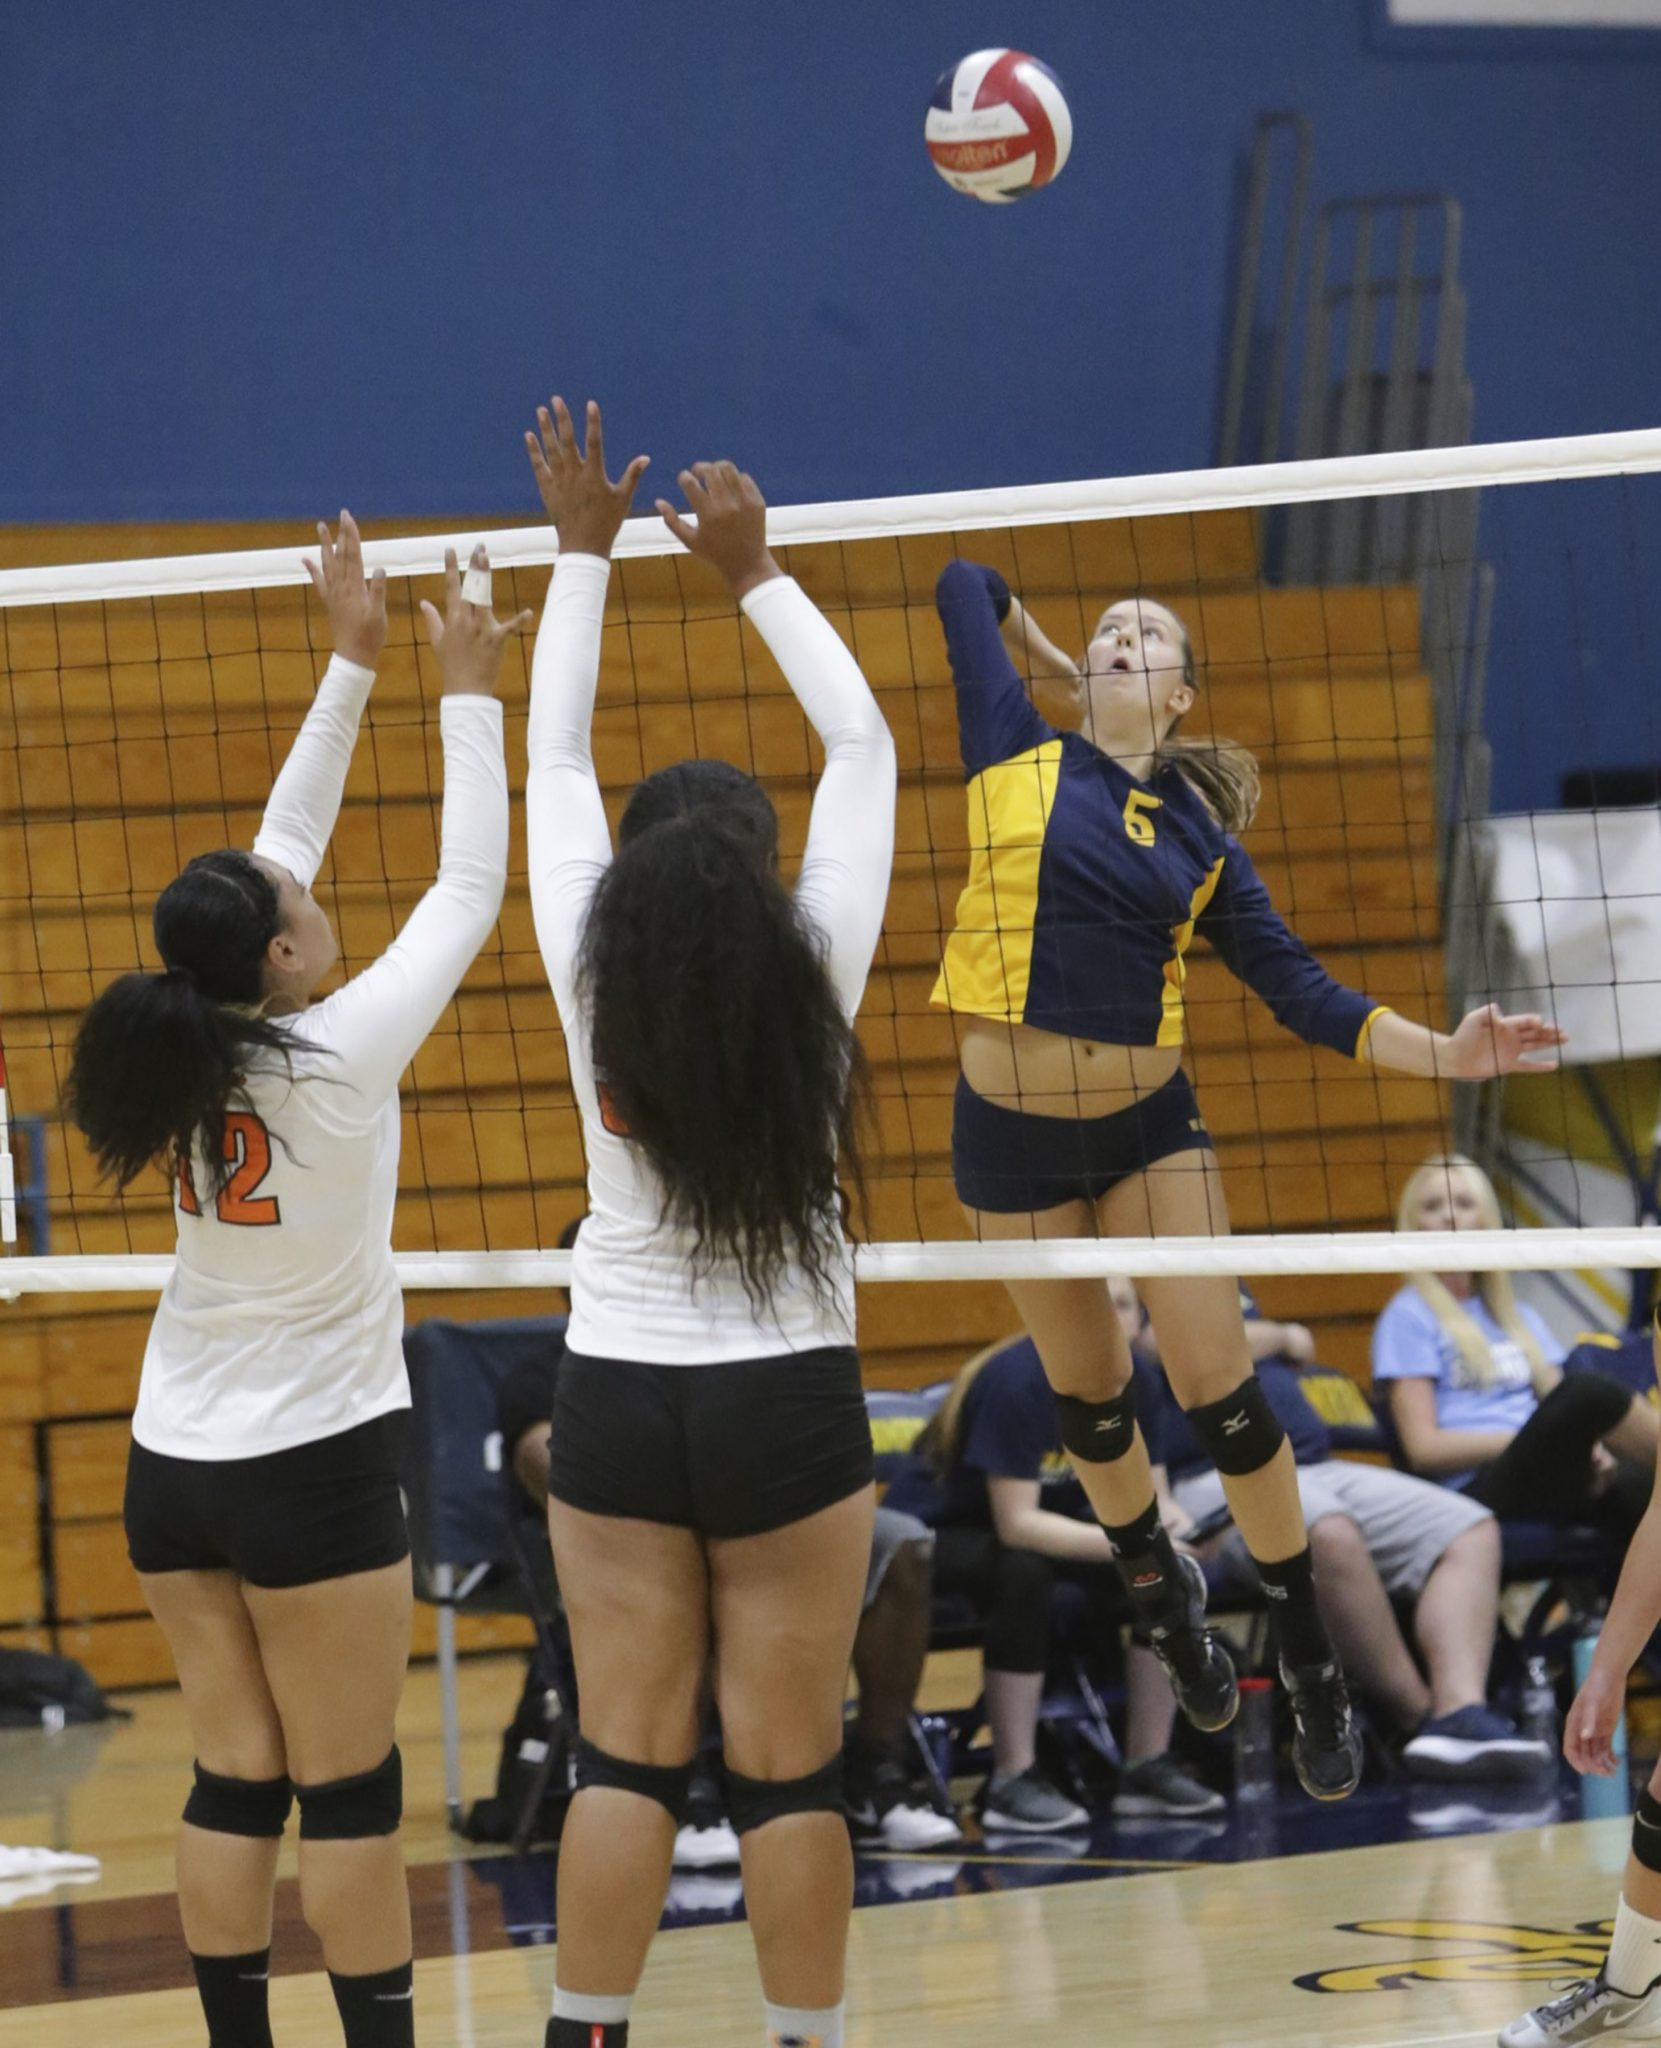 Alhambra senior Leslie Roofener leaps for one of her seven kills on the night in the Bulldogs' 3-1 win over the Pittsburg Pirates in their season opener. (MARK FIERNER / Martinez Tribune)